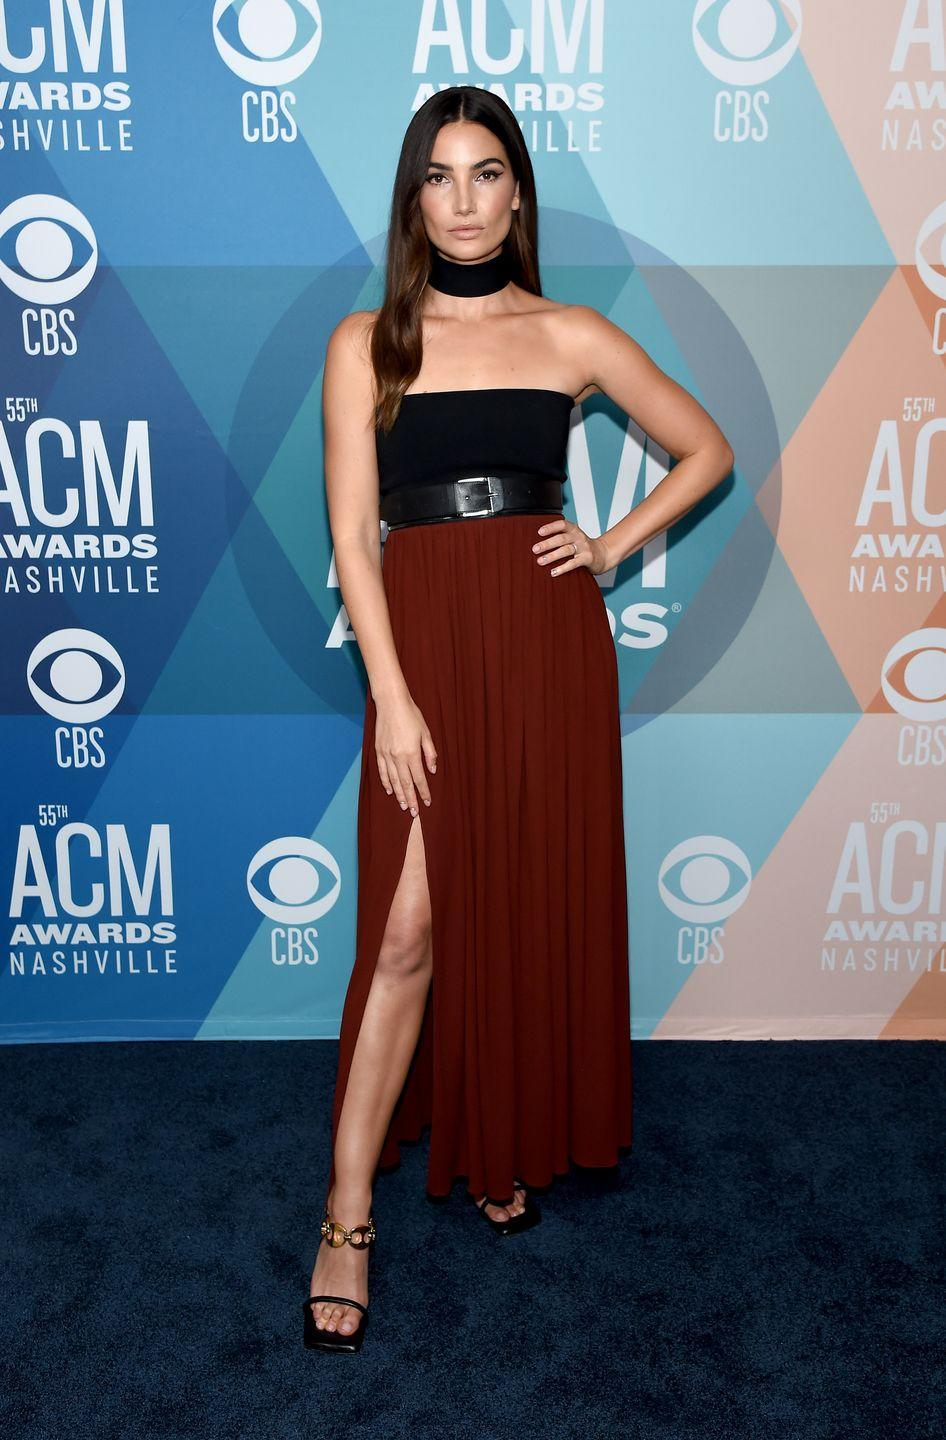 <p><strong>16 September</strong> Lily Aldridge attended the Academy of Country Music Awards in Nashville wearing a belted strapless Proenza Schouler dress. </p>